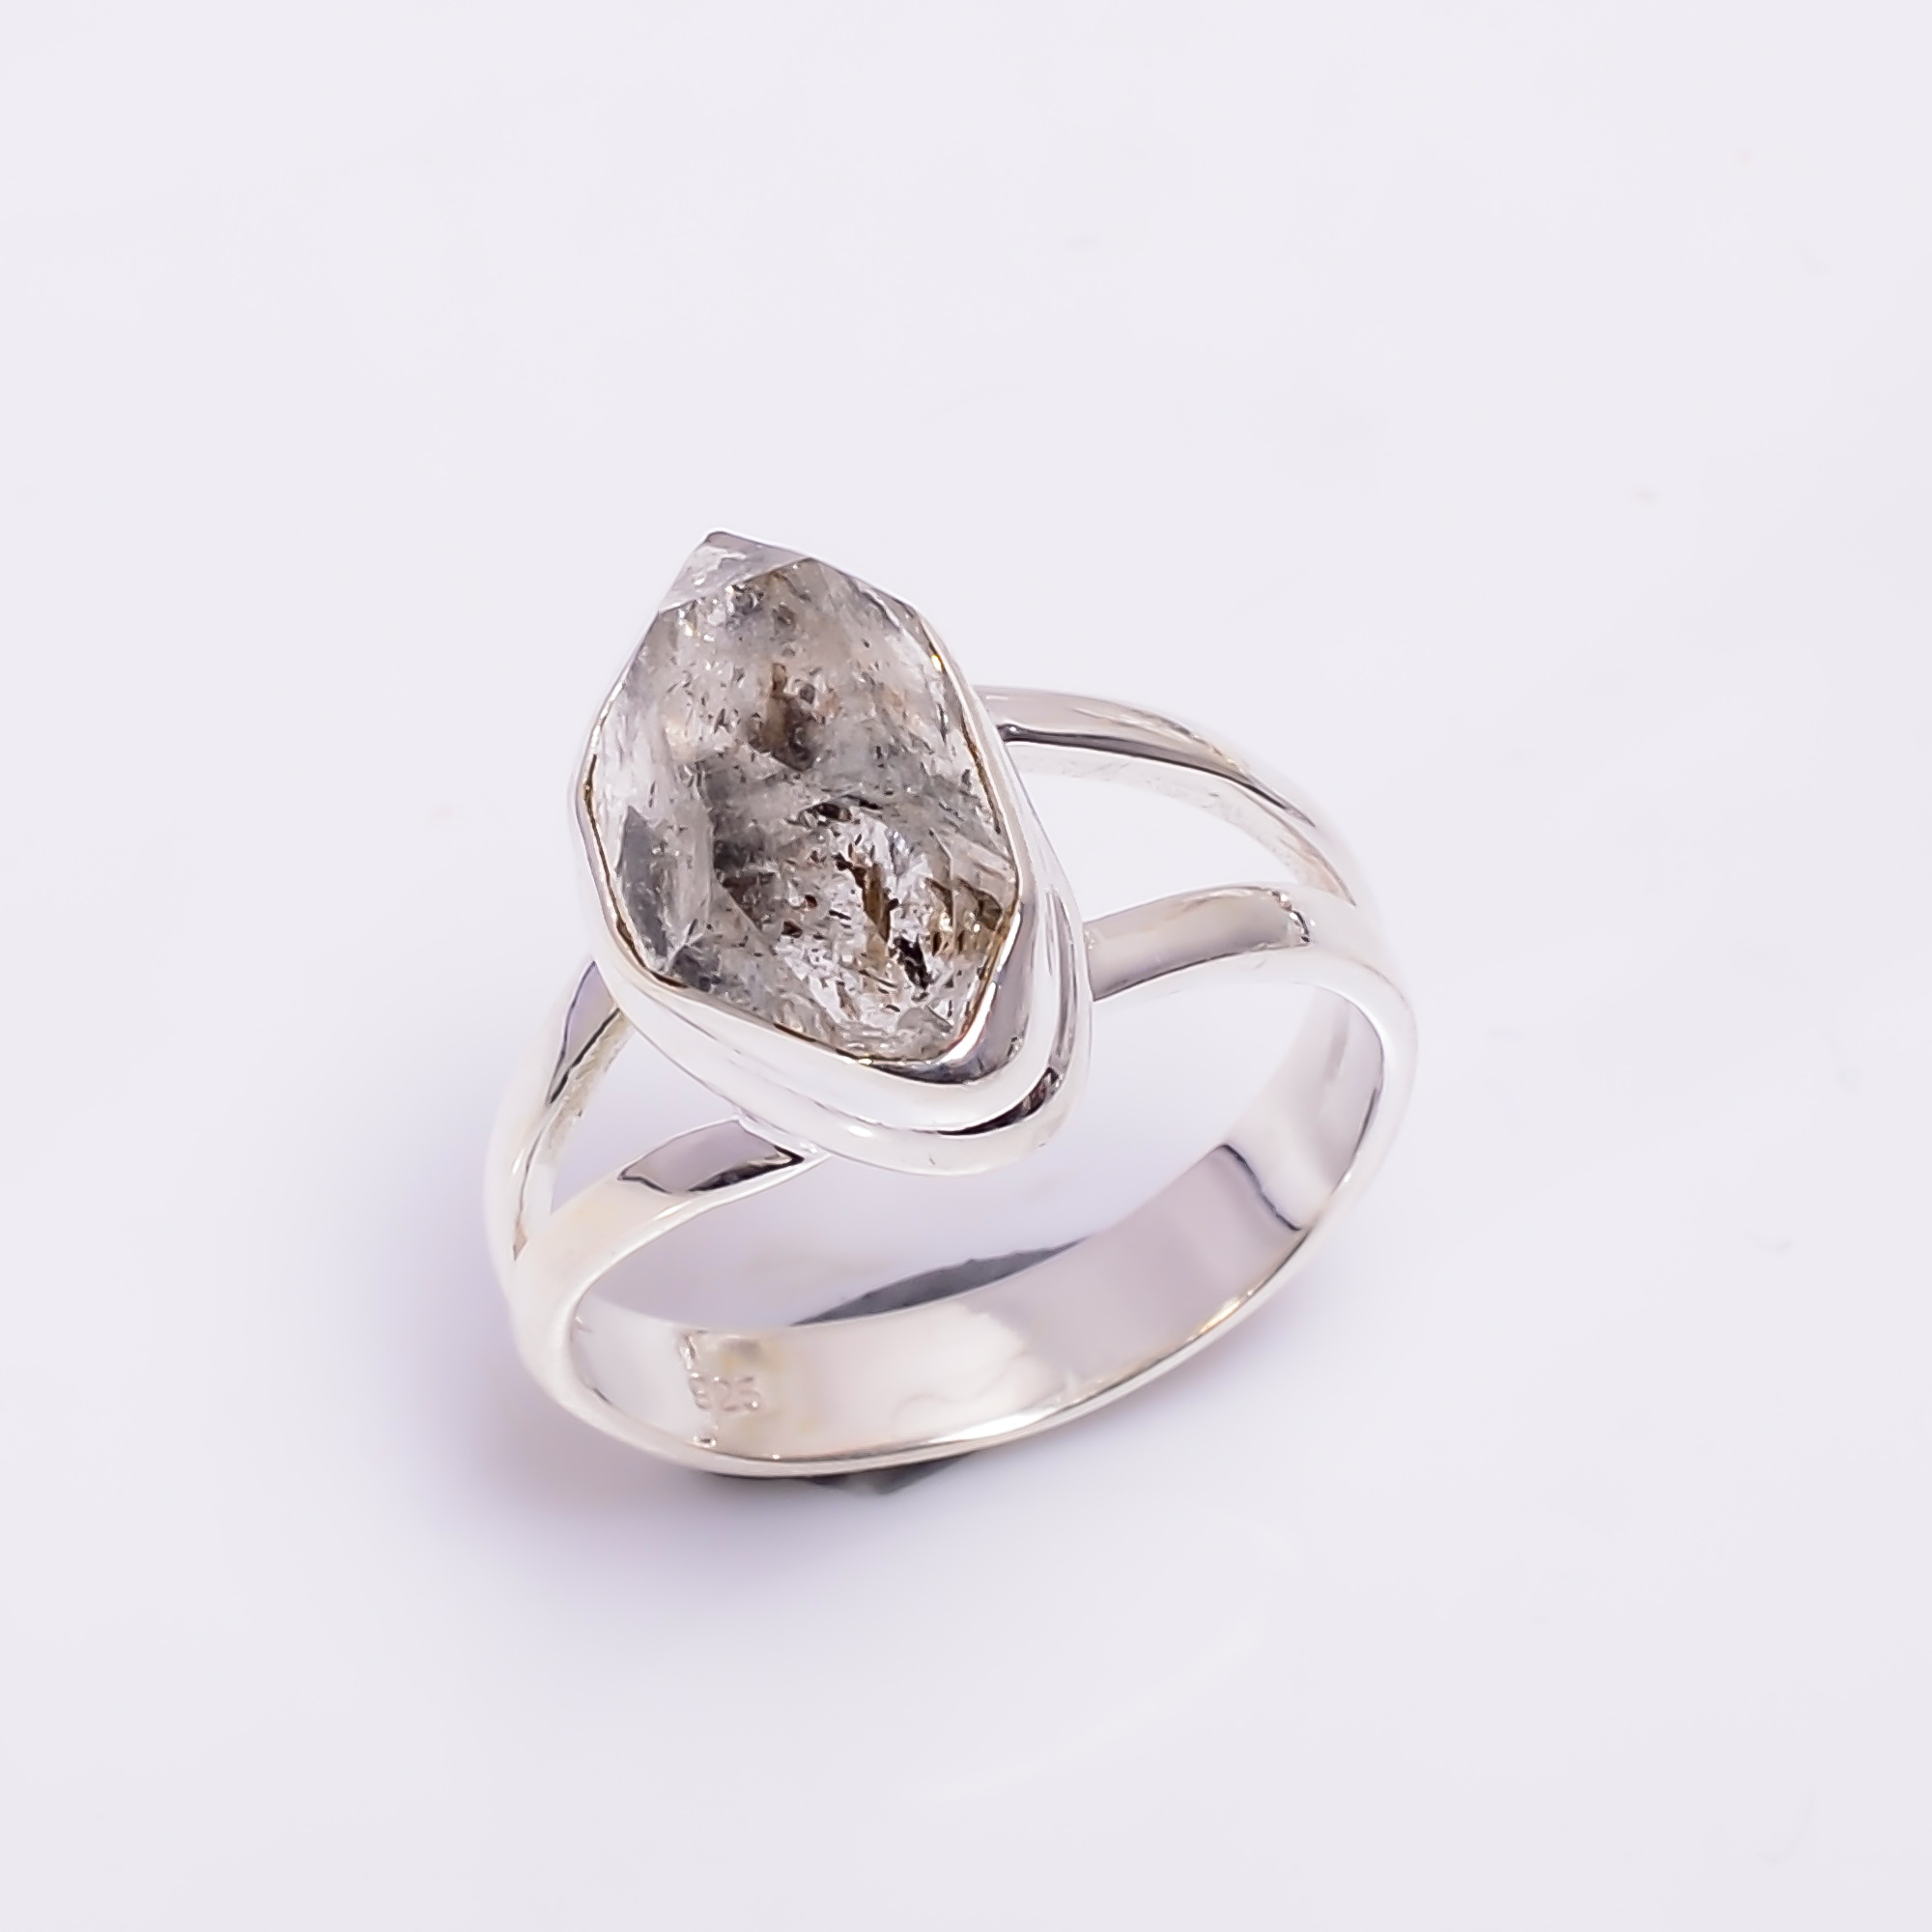 Natural Herkimer Diamond 925 Sterling Silver Ring Size US 5.5